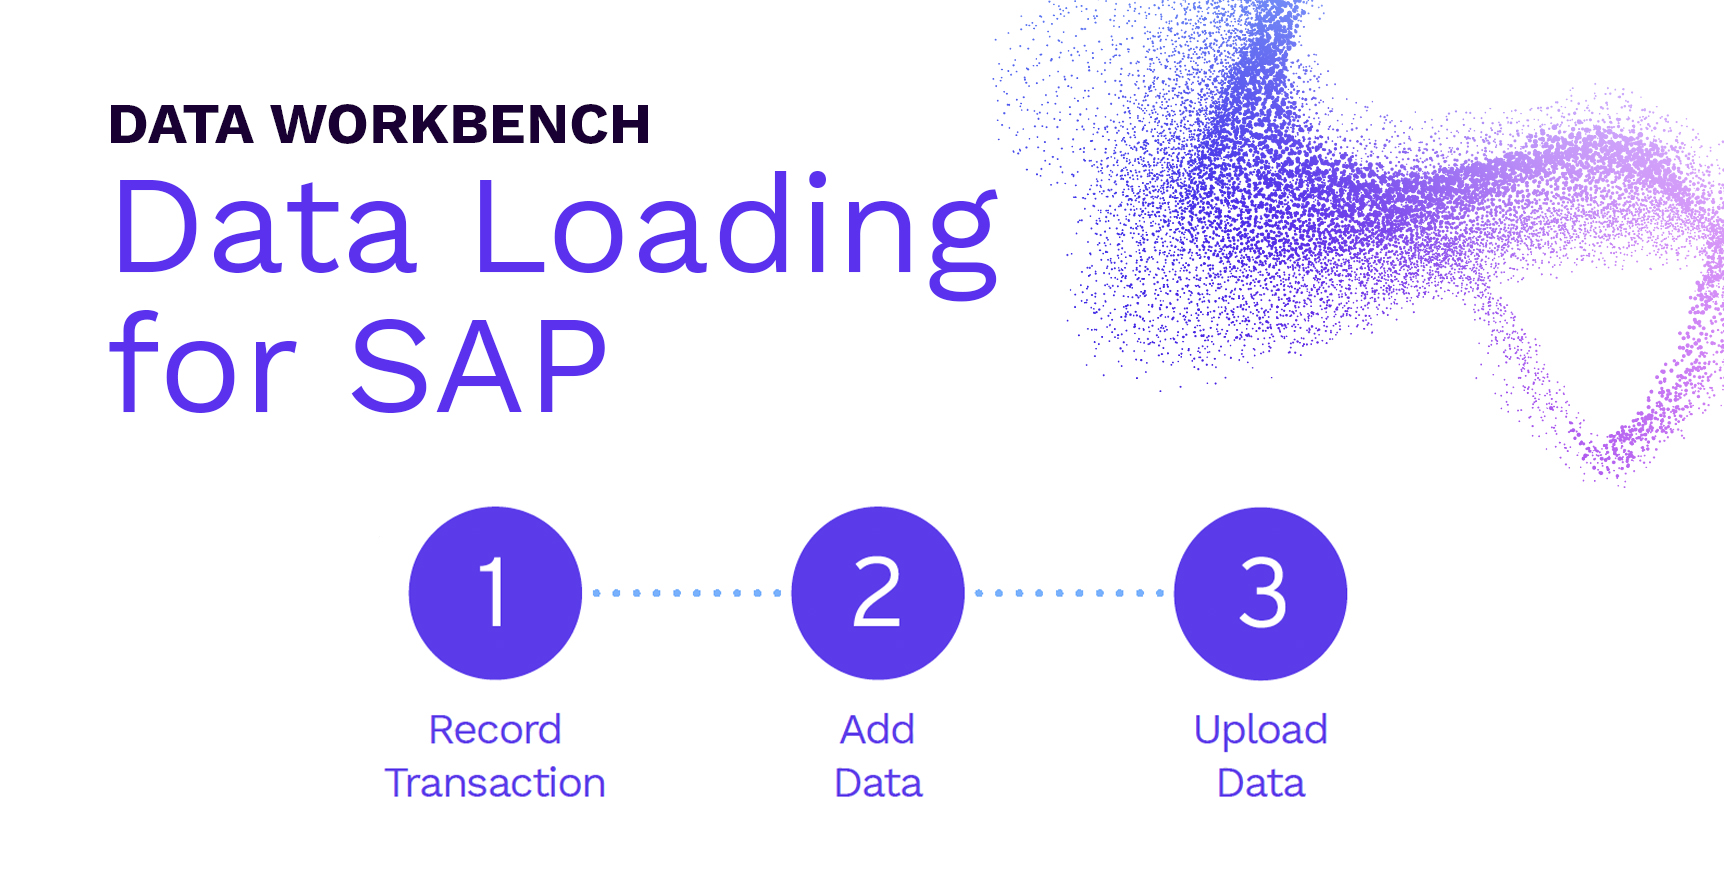 Data Loading for SAP